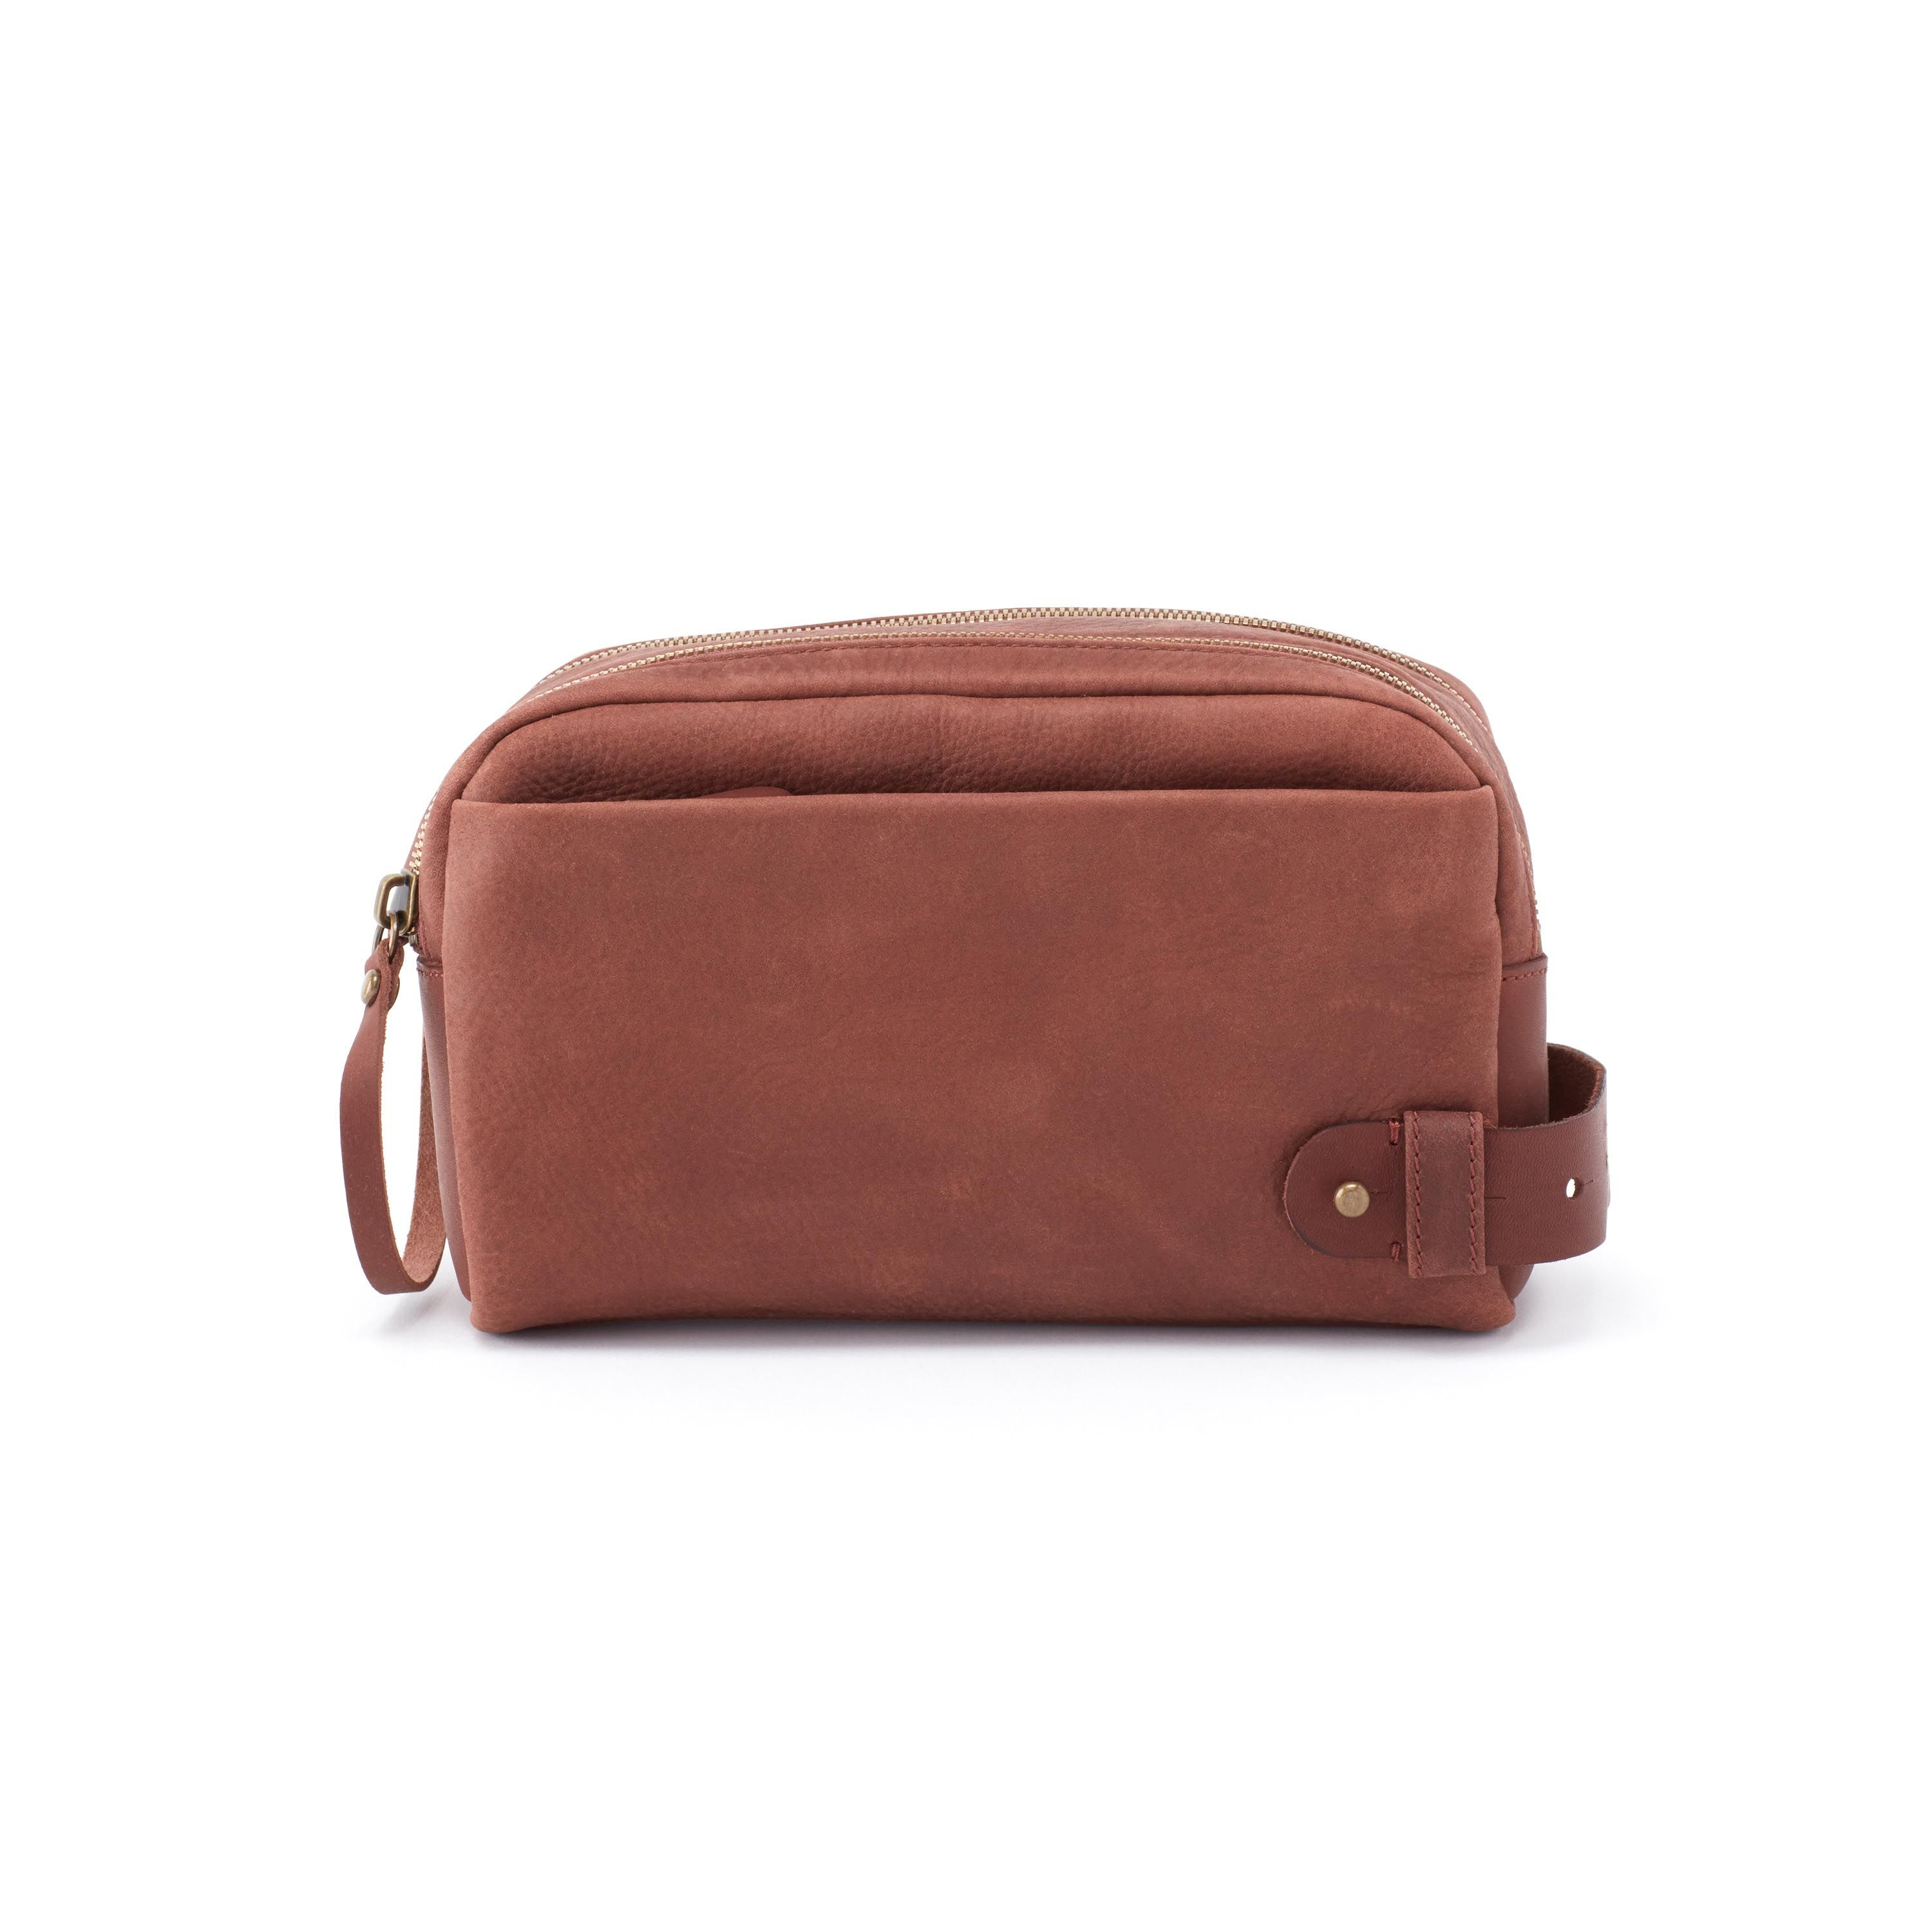 a57280eecaa5 Dapper is a travel-ready toiletry kit in dark brown leather